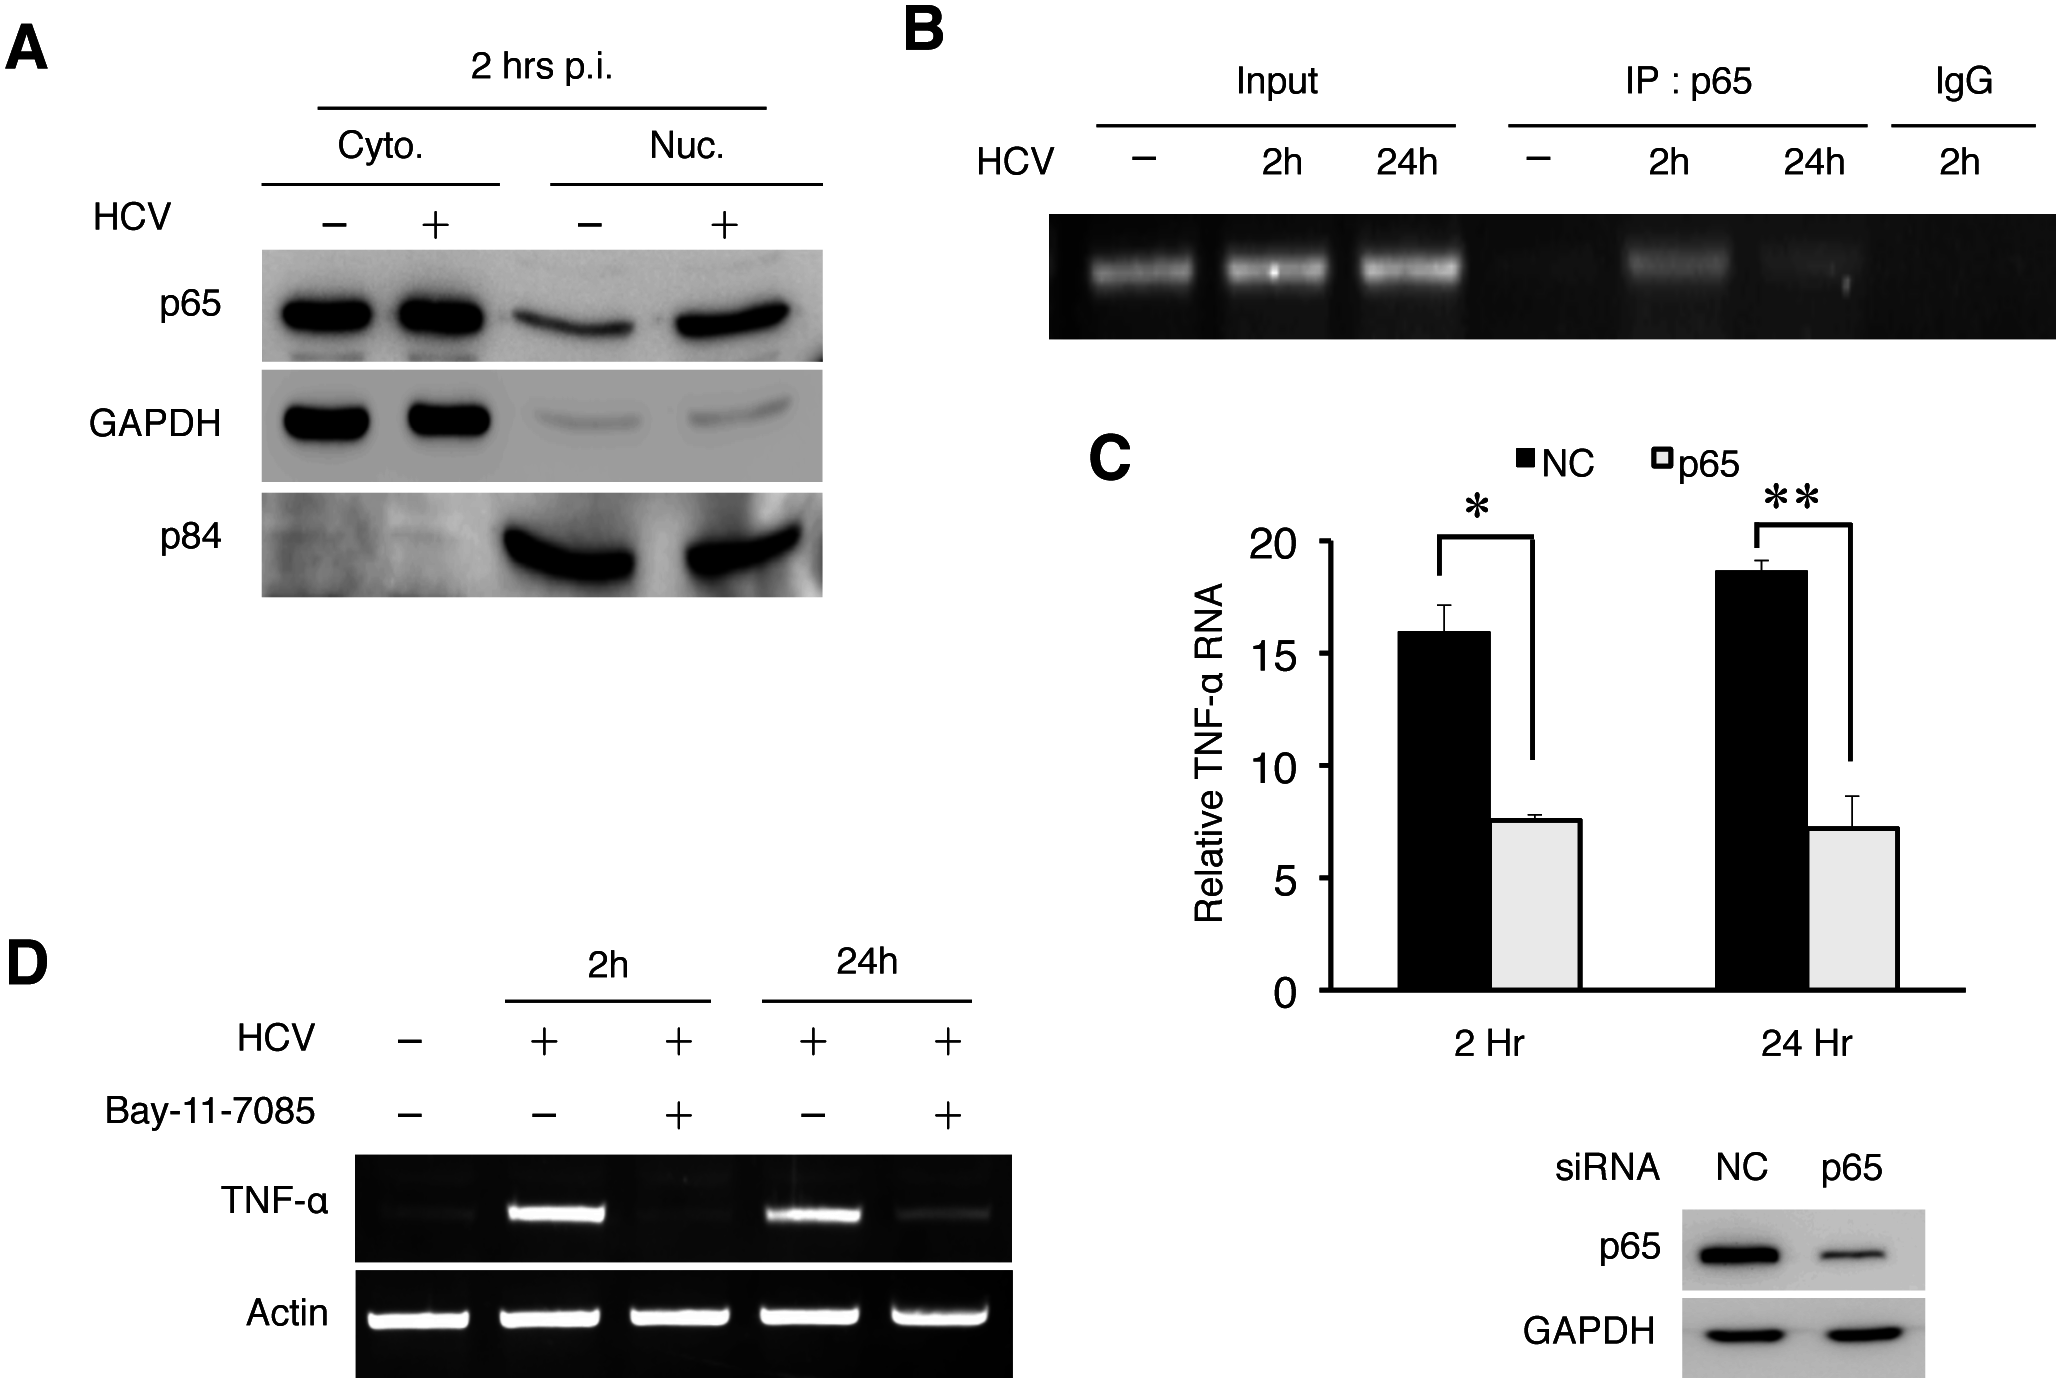 HCV-induced TNF-α by activating NF-κB.